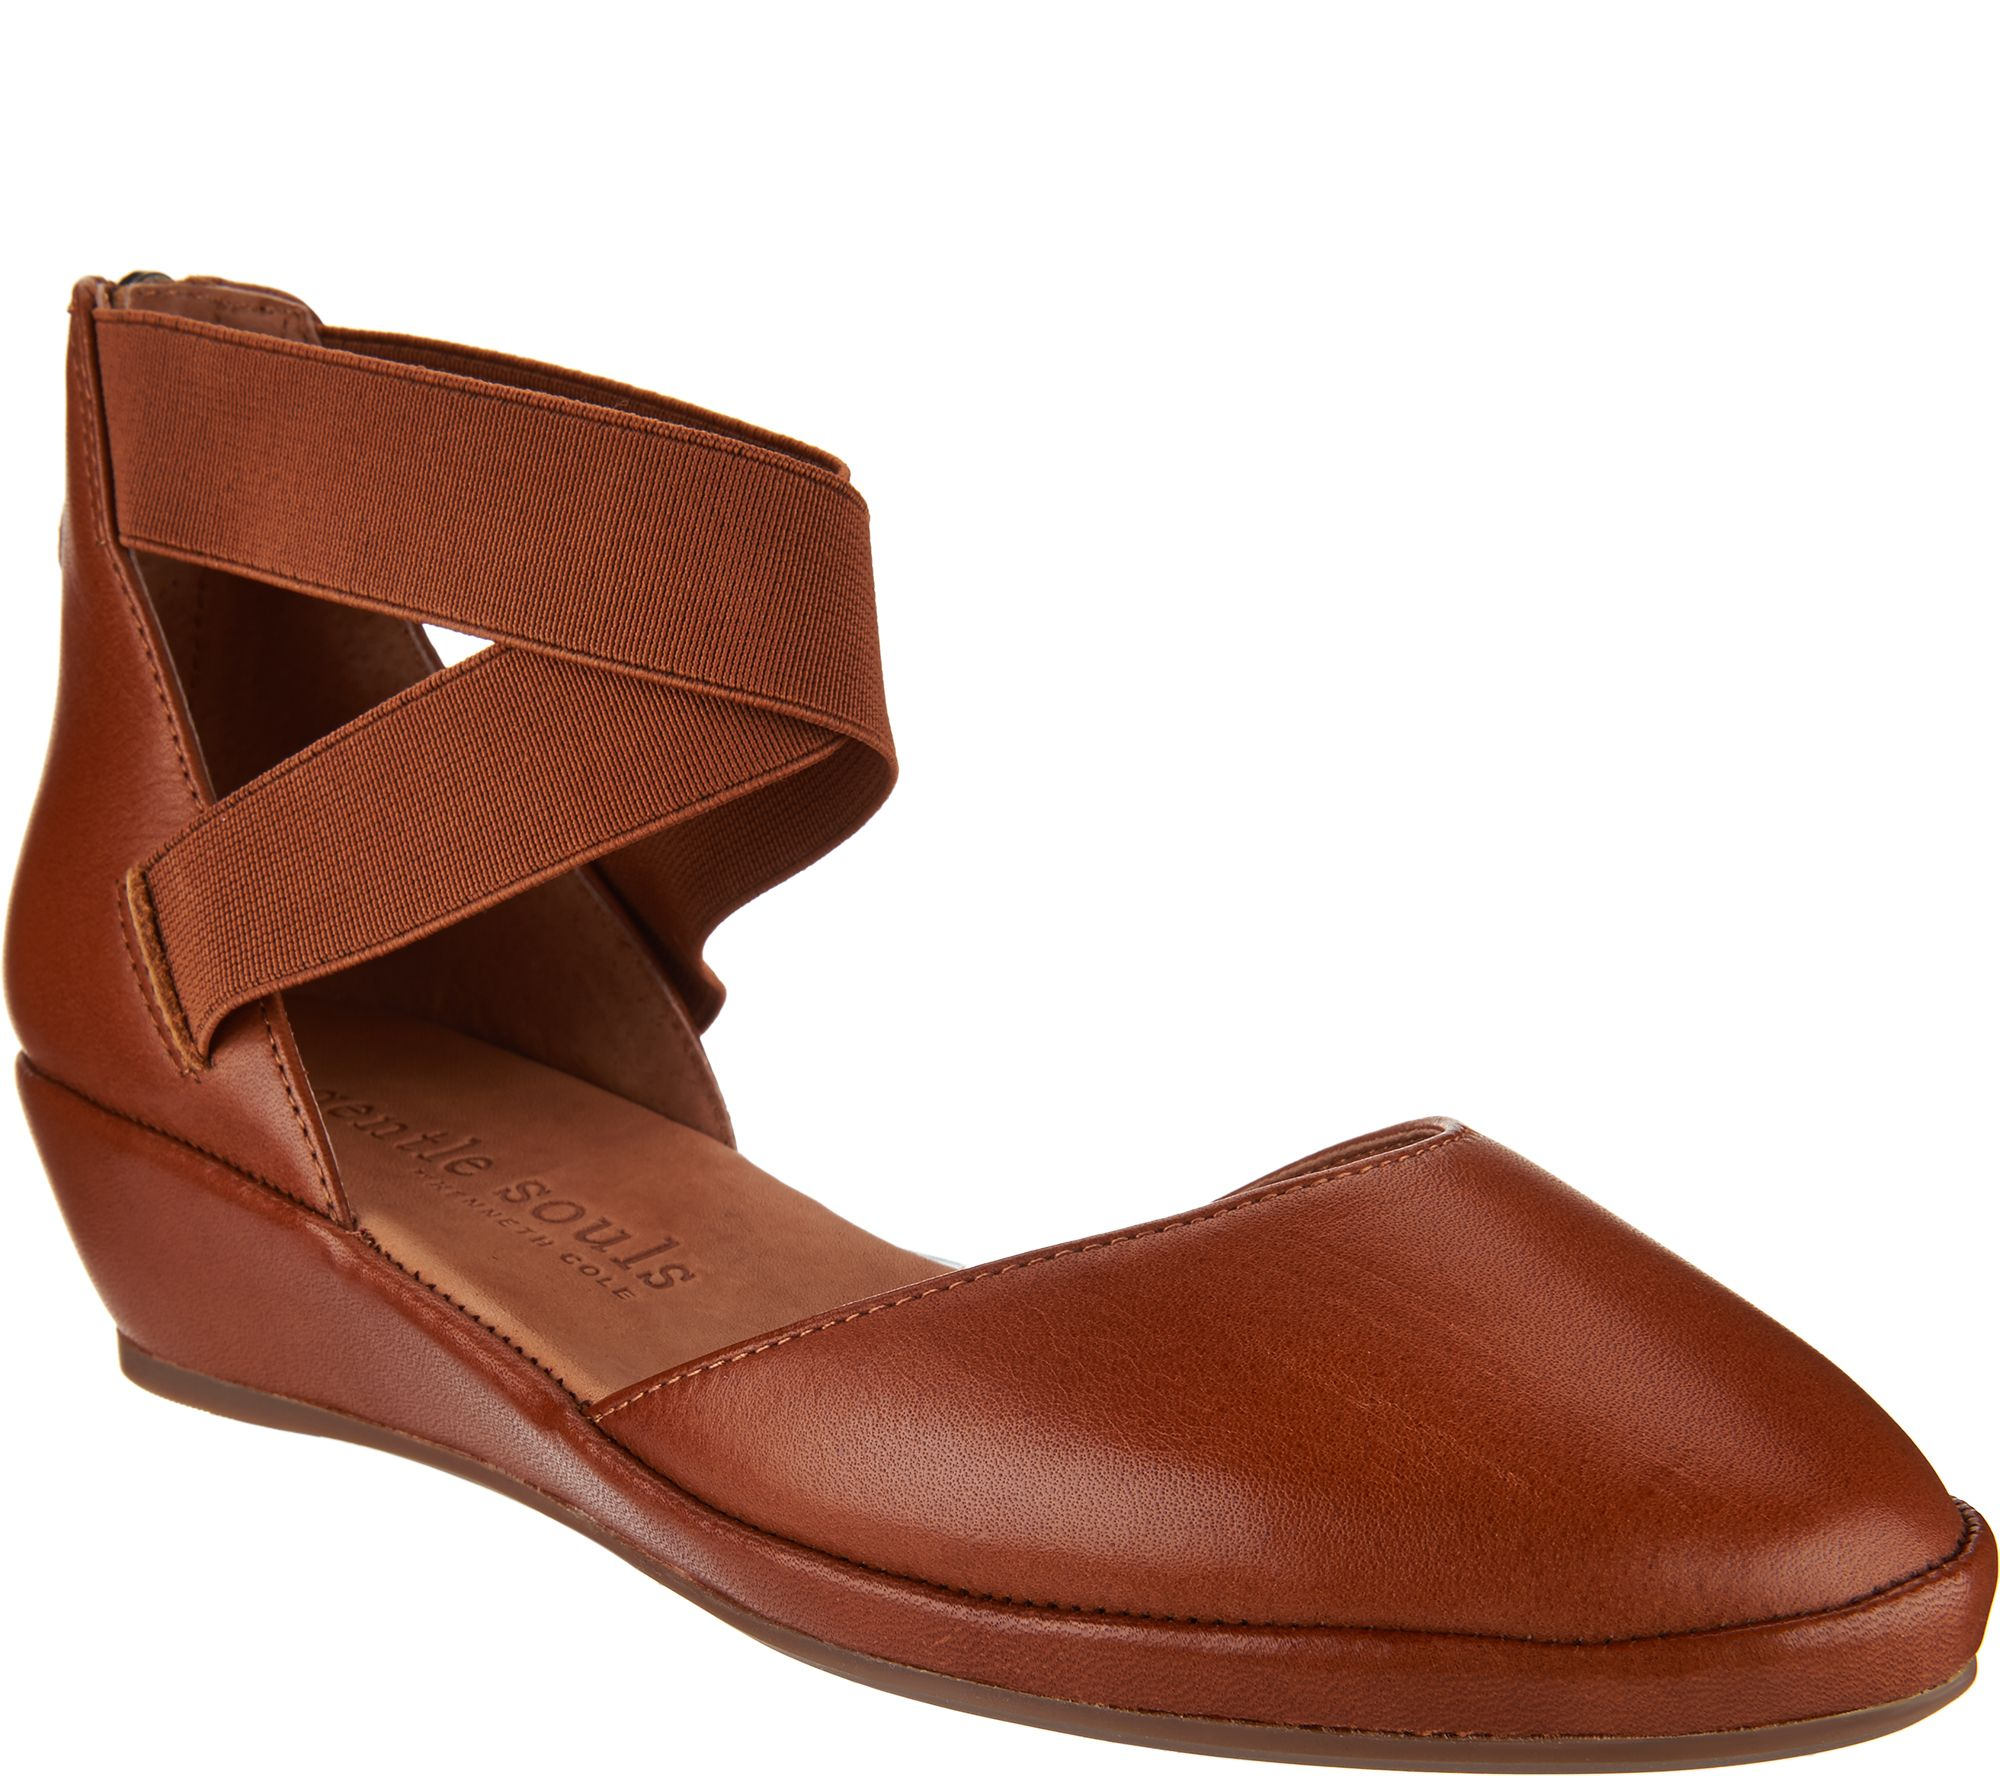 293e9f38a0 Gentle Souls Leather Two Piece Wedges - Noa - Page 1 — QVC.com